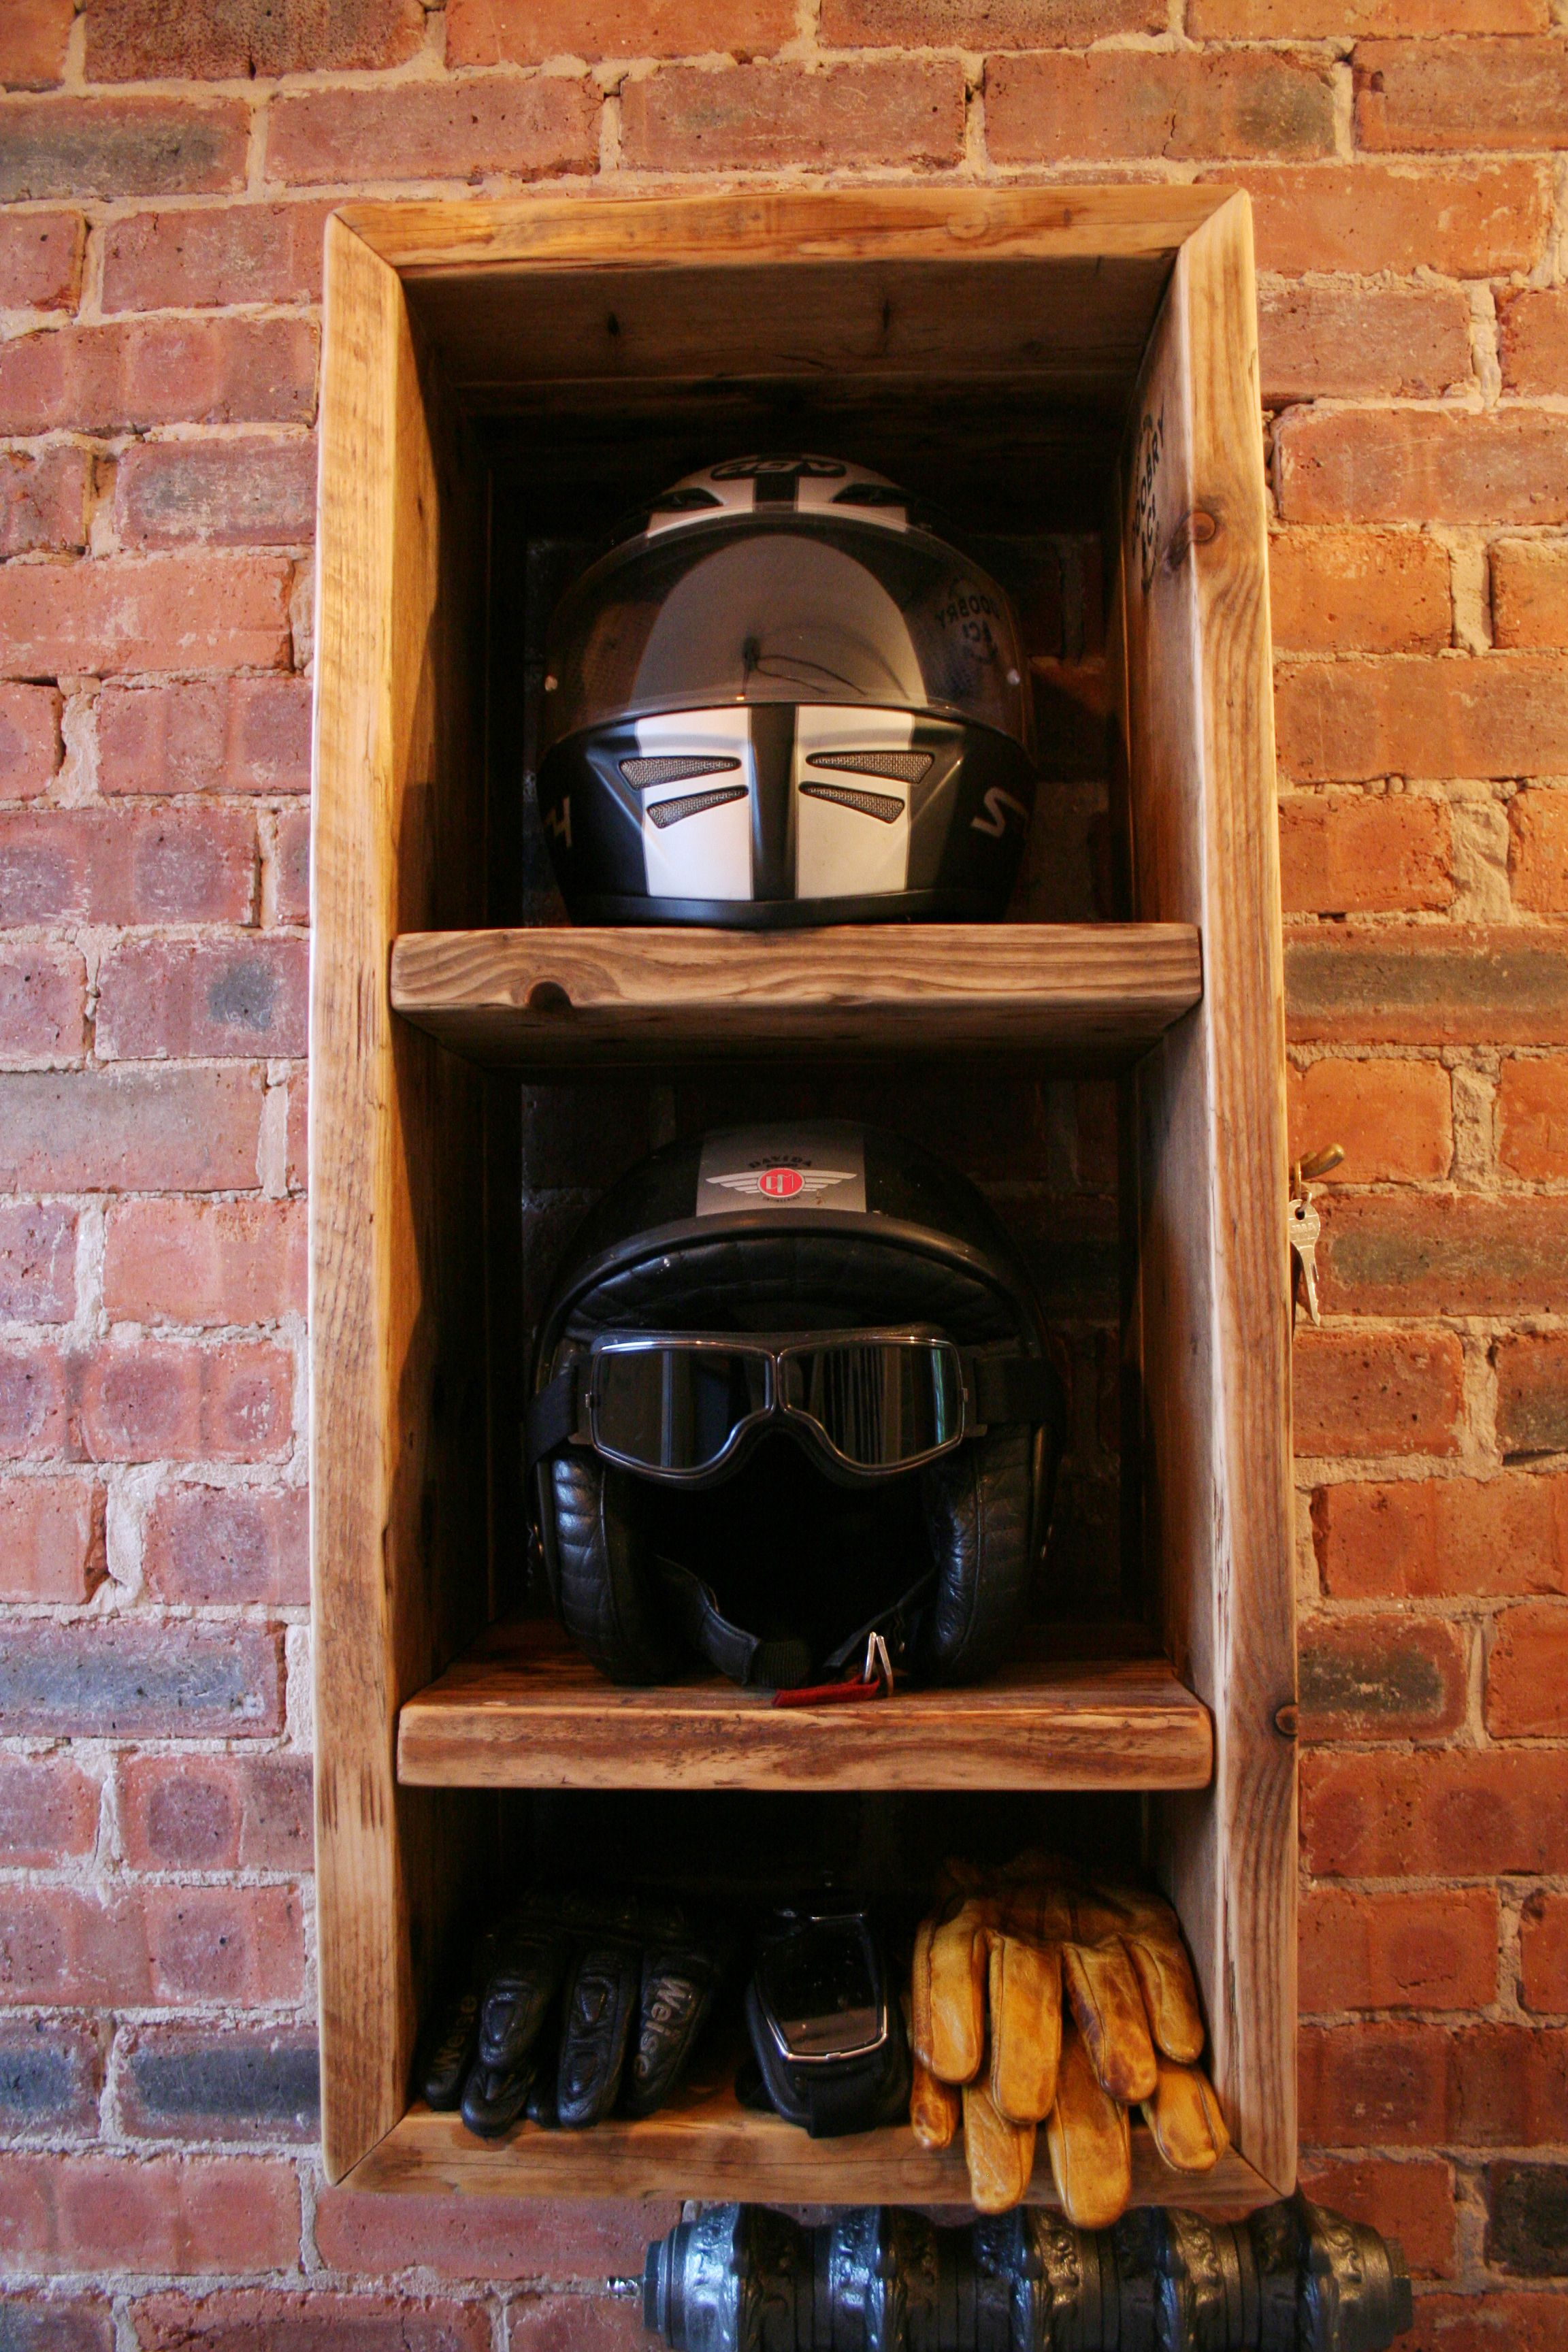 4 Sale Motorbike Motorcycle Helmet Storage Unit 2 Compartments For Helmets 1 For Gloves Etc